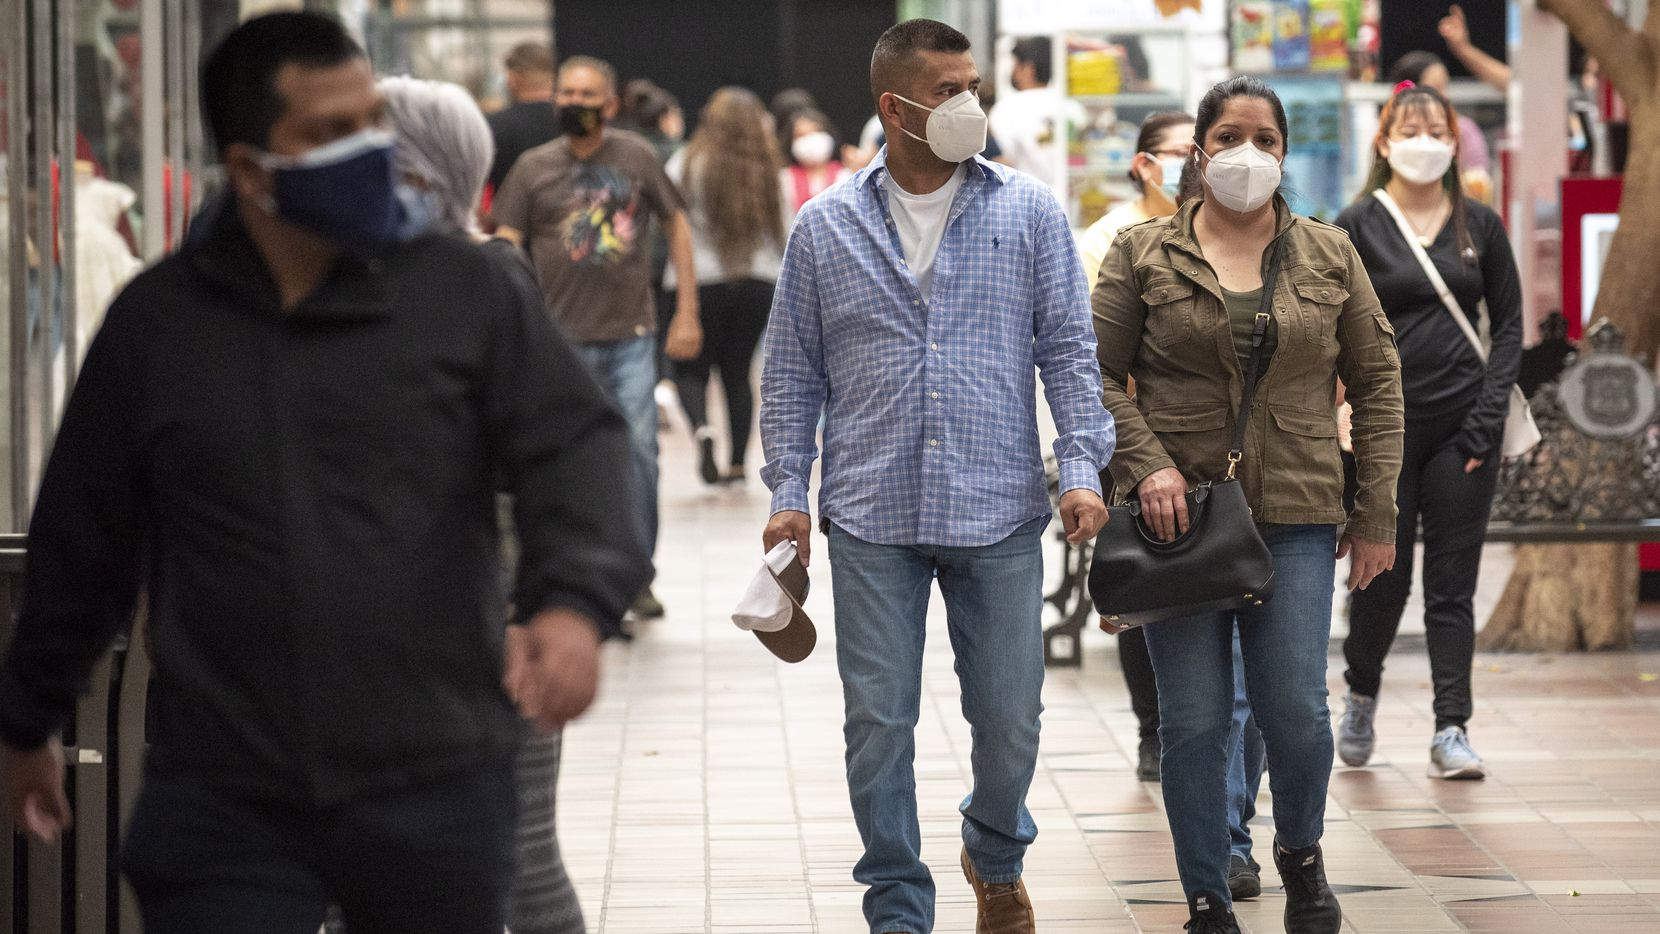 A couple wears face coverings while shopping at La Gran Plaza in Fort Worth, on March 6, 2021. Tarrant County Judge Glen Whitley said this week he will not issue a mask requirement.